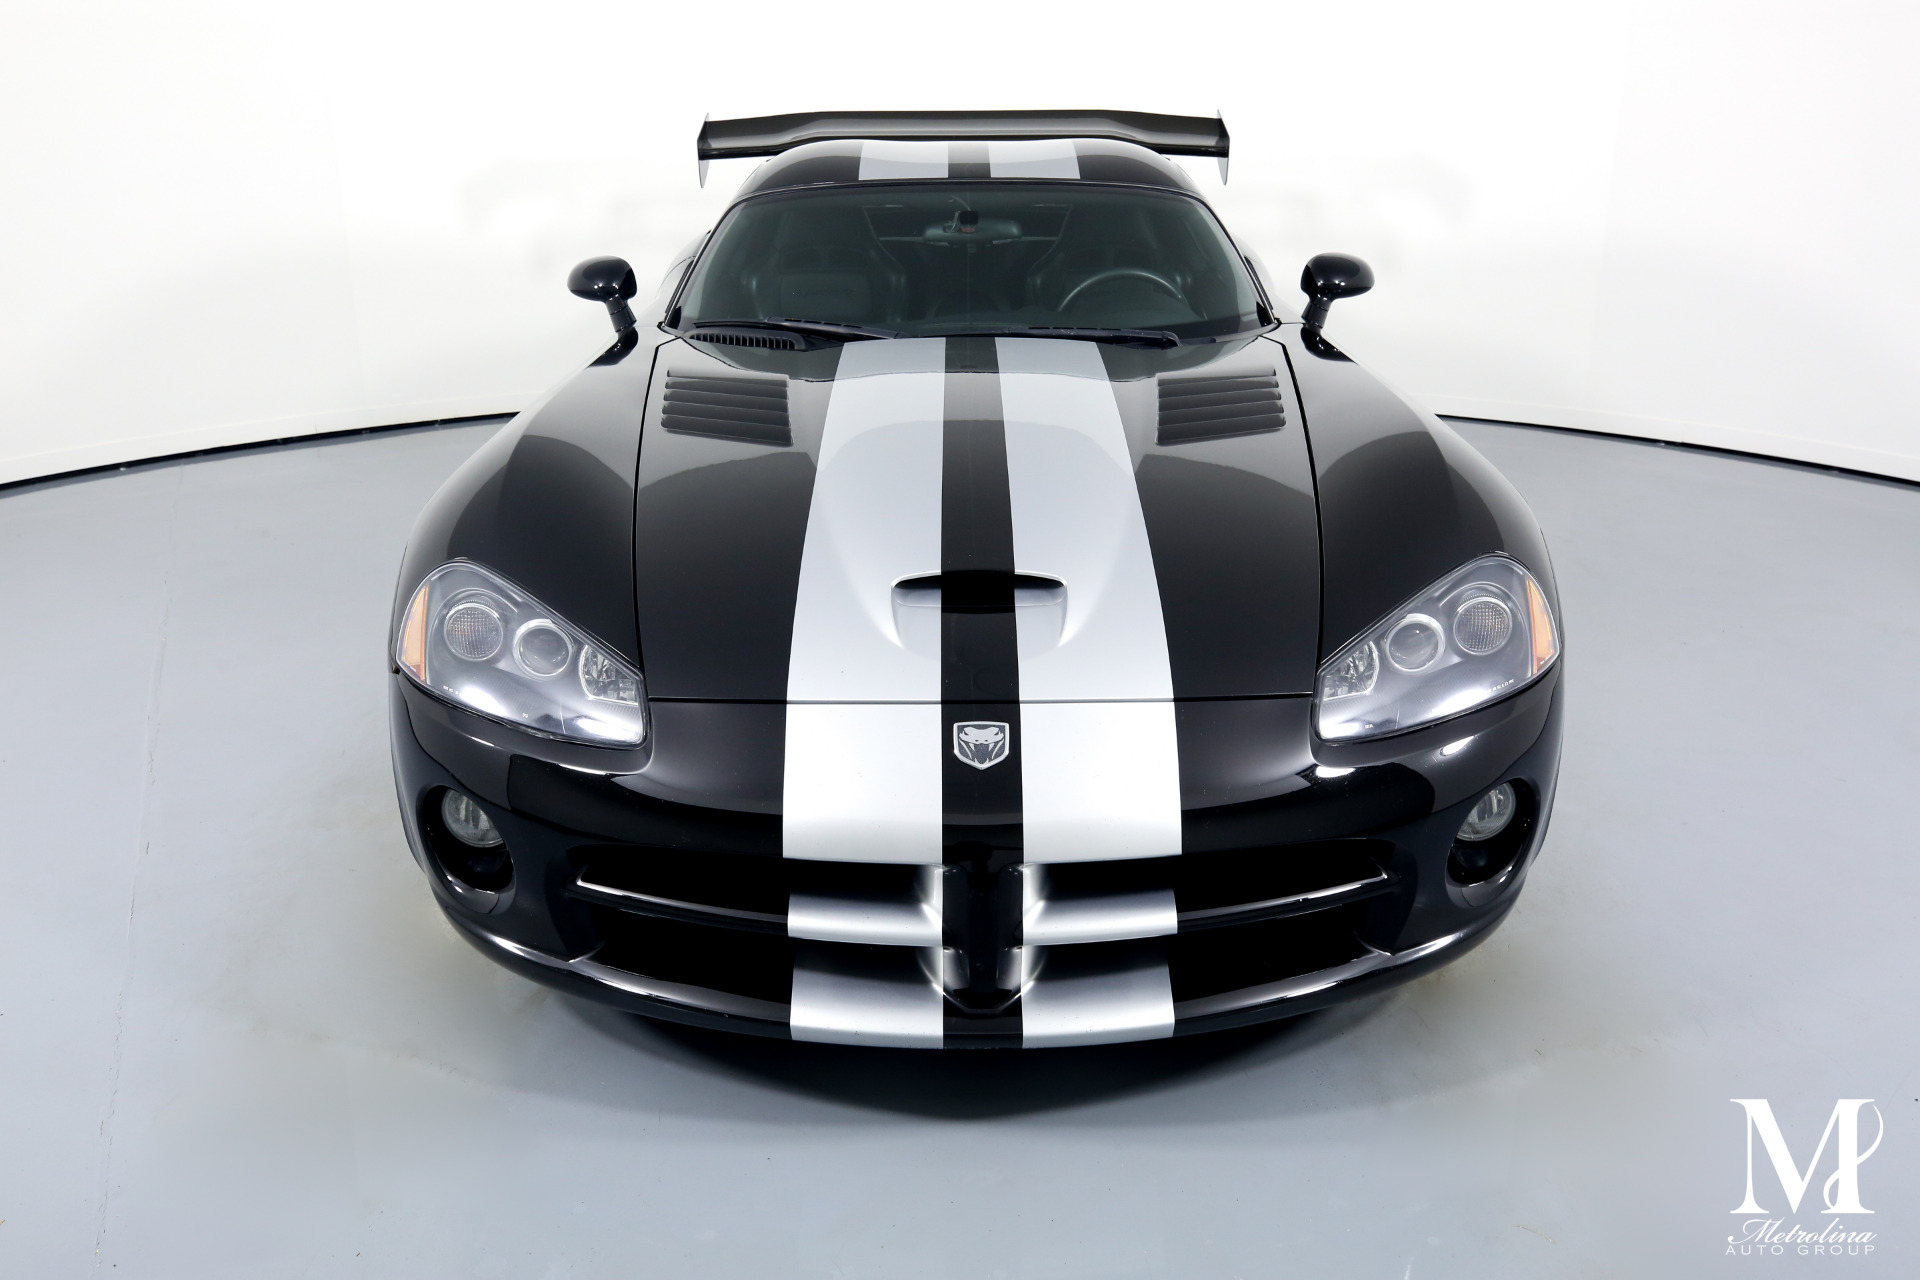 Used 2006 Dodge Viper SRT-10 for sale $64,996 at Metrolina Auto Group in Charlotte NC 28217 - 3